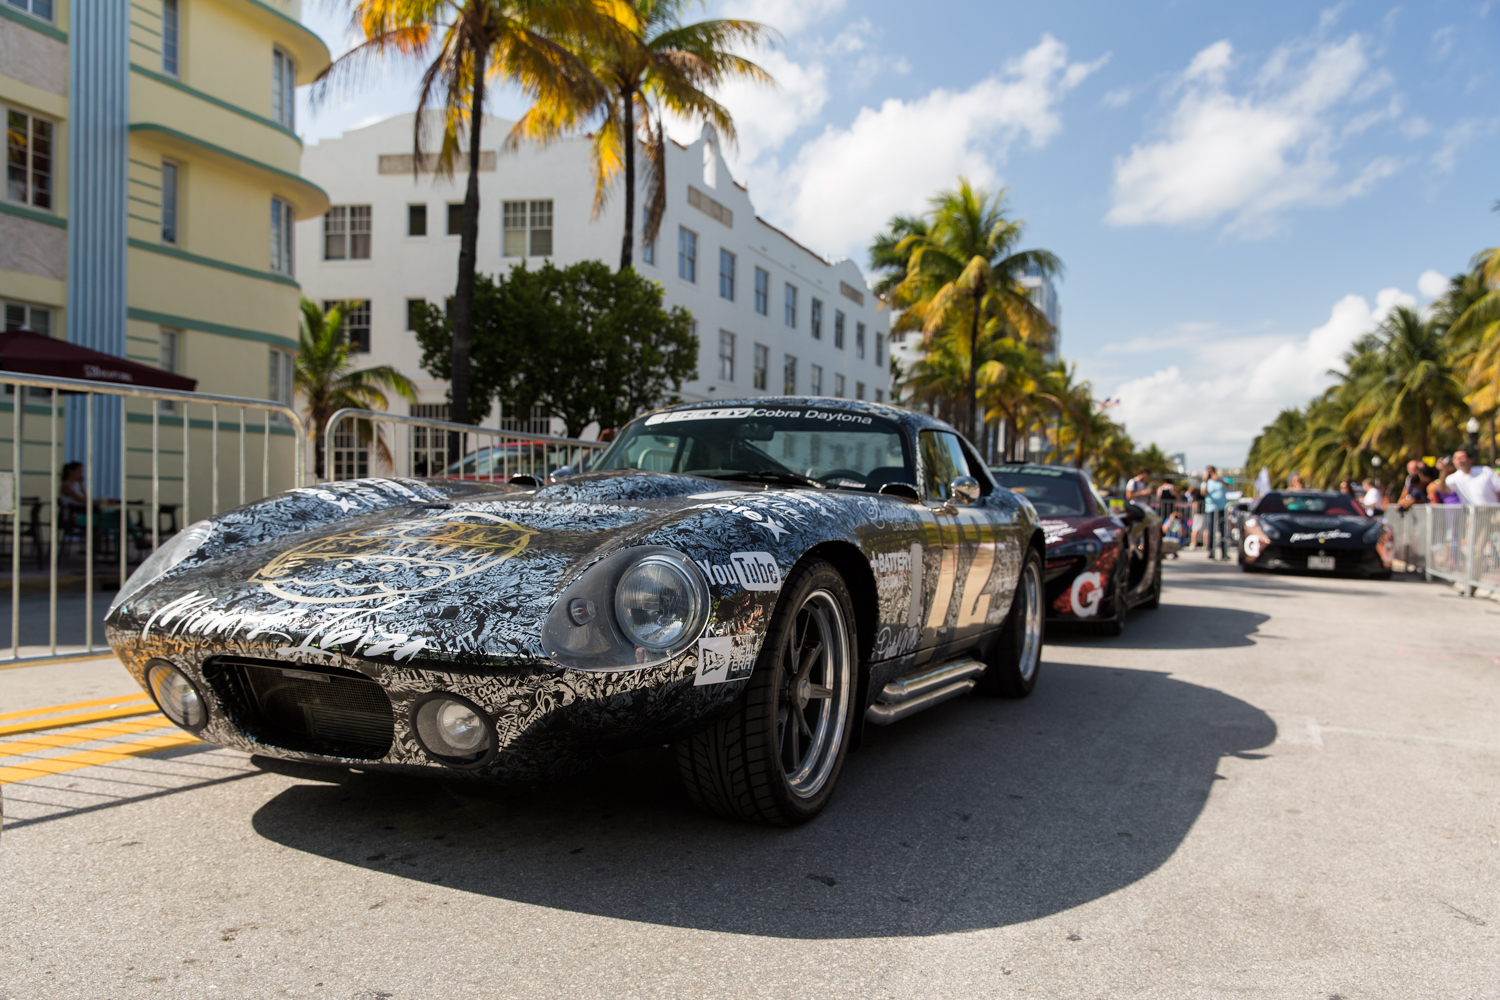 SMoores_14-06-04_Gumball3000 Miami_0172-Edit